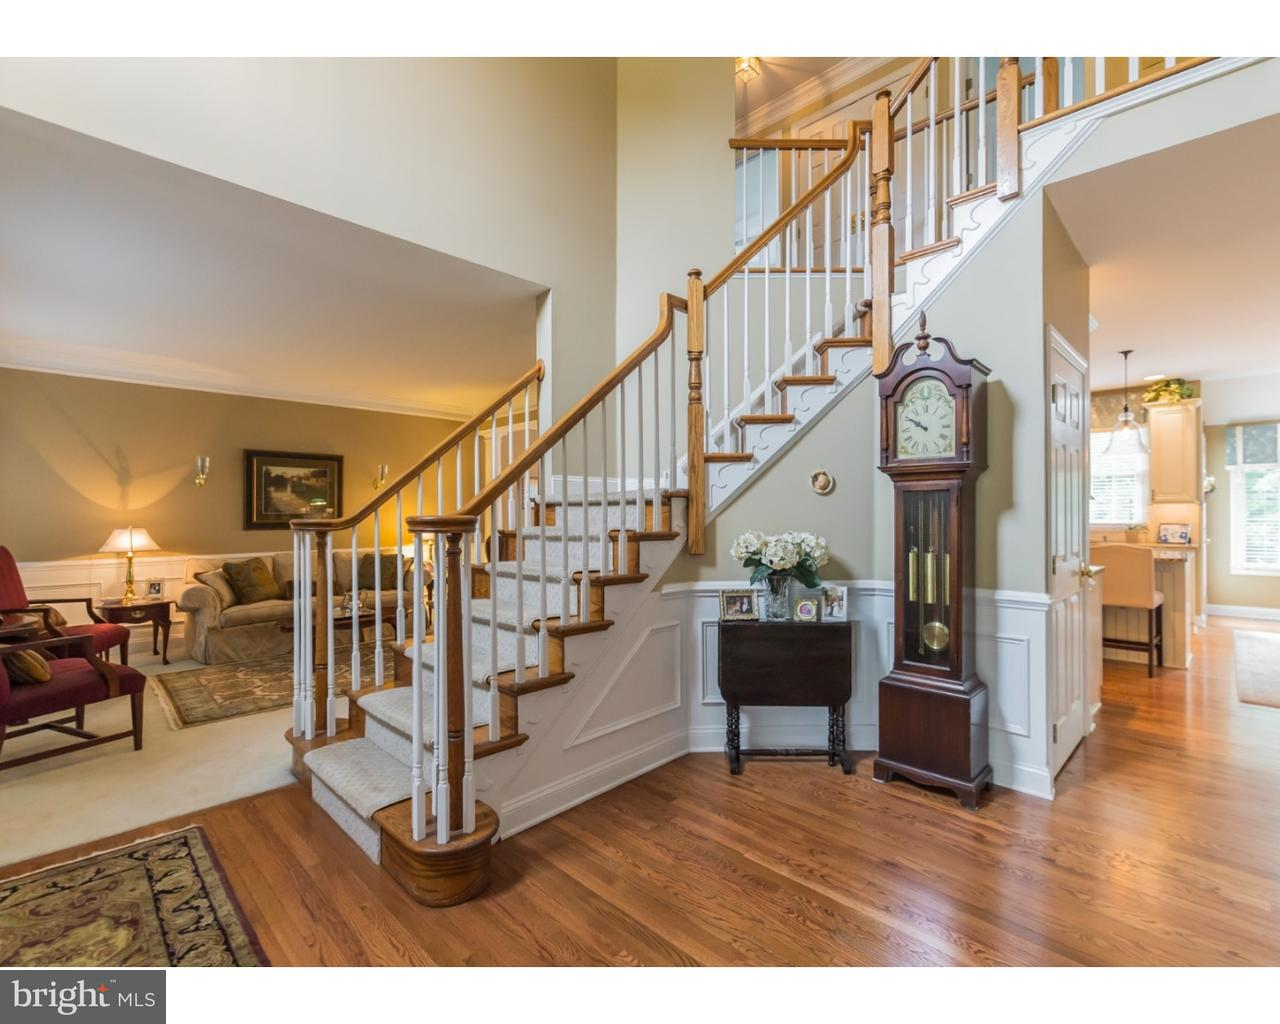 430 SHELBOURNE LN, PHOENIXVILLE - Listed at $639,900, PHOENIXVILLE